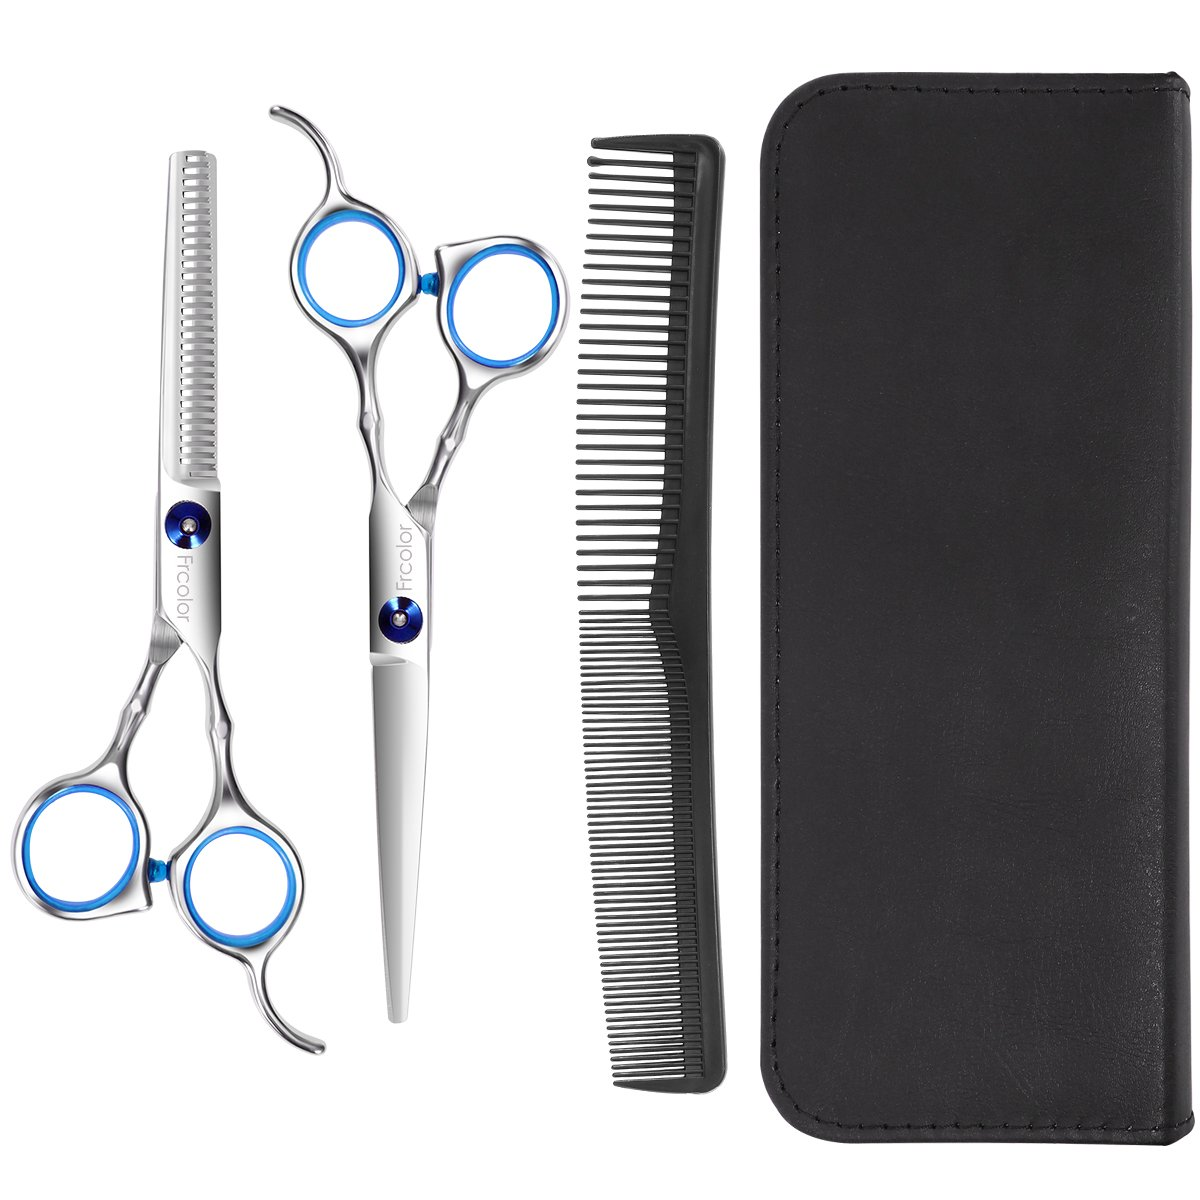 Frocolor Hairdresser Scissors Set